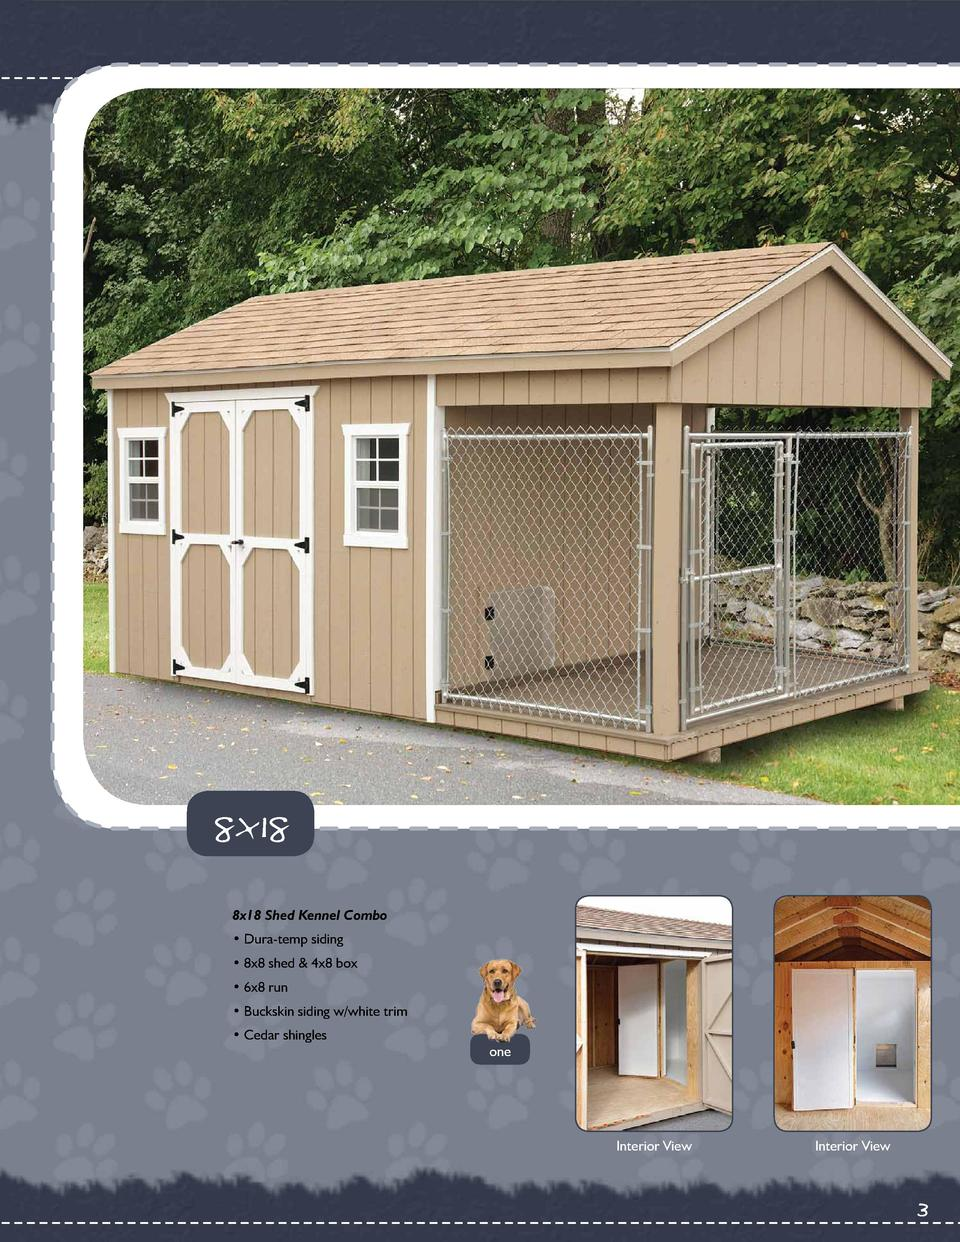 garden greenhouse shed combo plans html with 6x8 Shed Plans on Kings Bromley besides 6x8 Shed Plans in addition Greenhouse Chicken Coop  bo Plans Diy likewise Shed  bo besides Lawn Sheds Lowes.